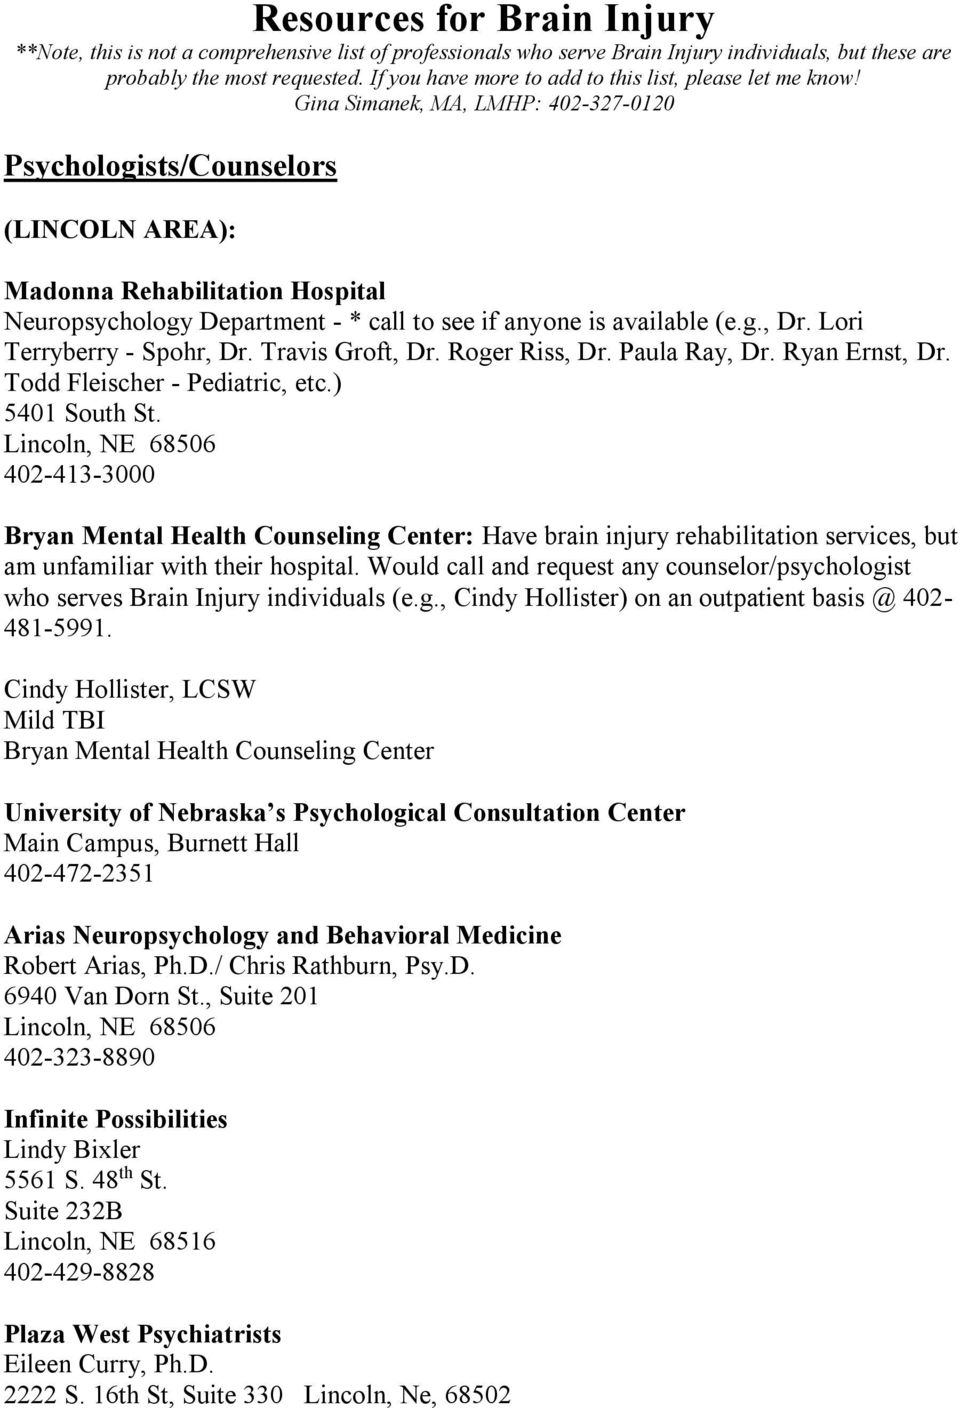 Gina Simanek, MA, LMHP: 402-327-0120 Psychologists/Counselors (LINCOLN AREA): Madonna Rehabilitation Hospital Neuropsychology Department - * call to see if anyone is available (e.g., Dr.